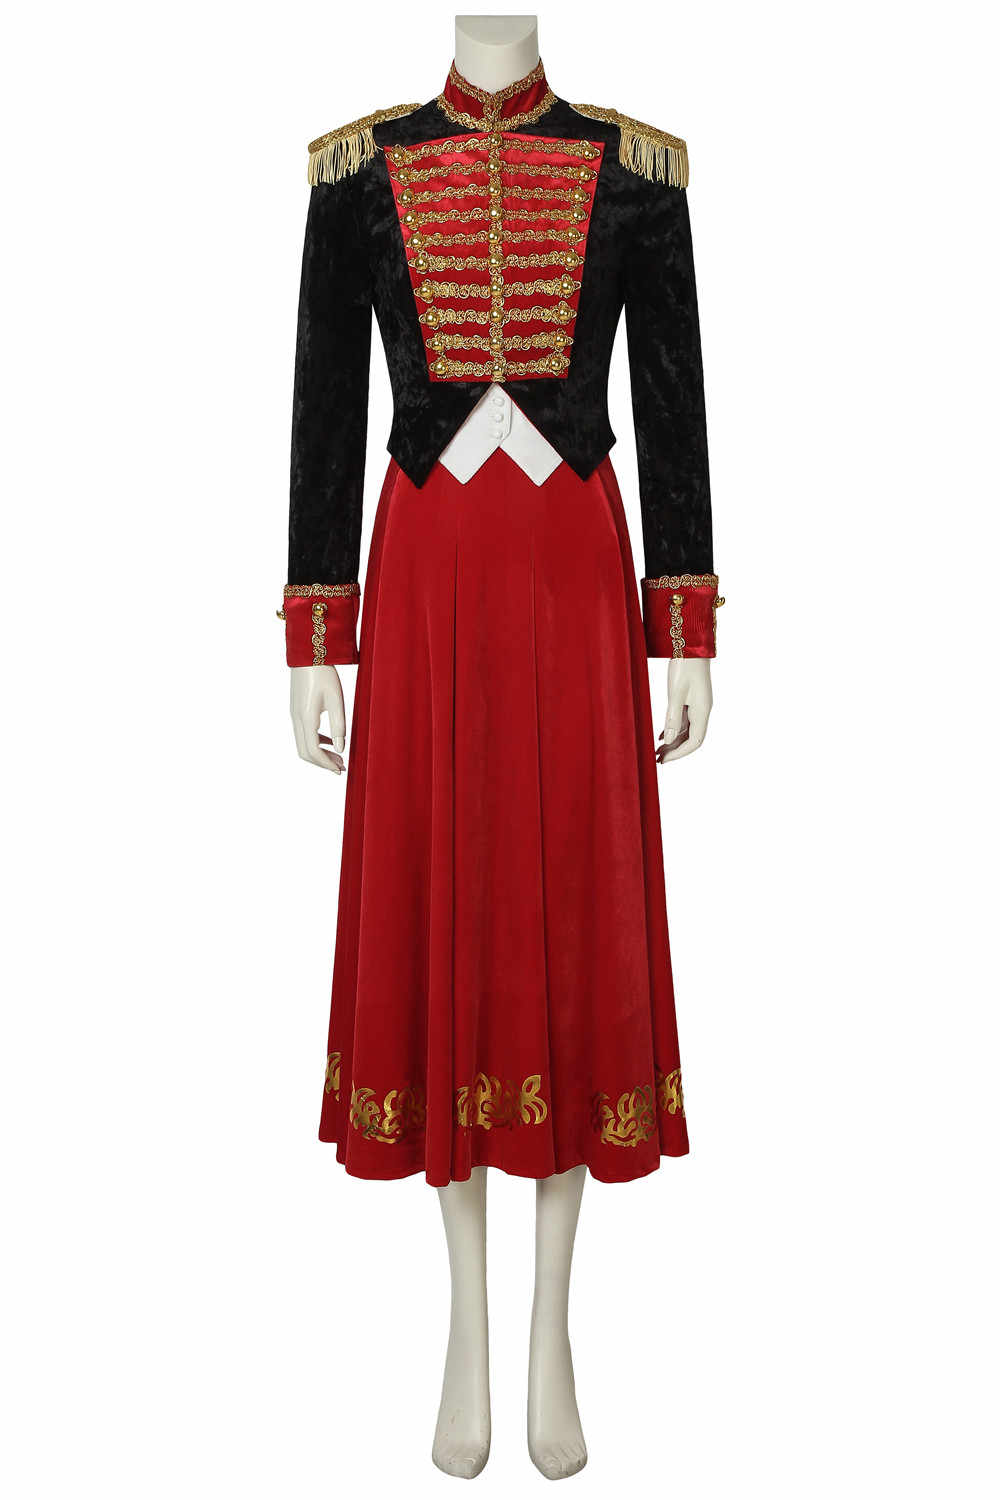 e7c845a9e72e0 Stage Clothes The Nutcracker and the Four Realms Cosplay Clara Costume  Uniform Dress Halloween Carnival Customize Free Shipping